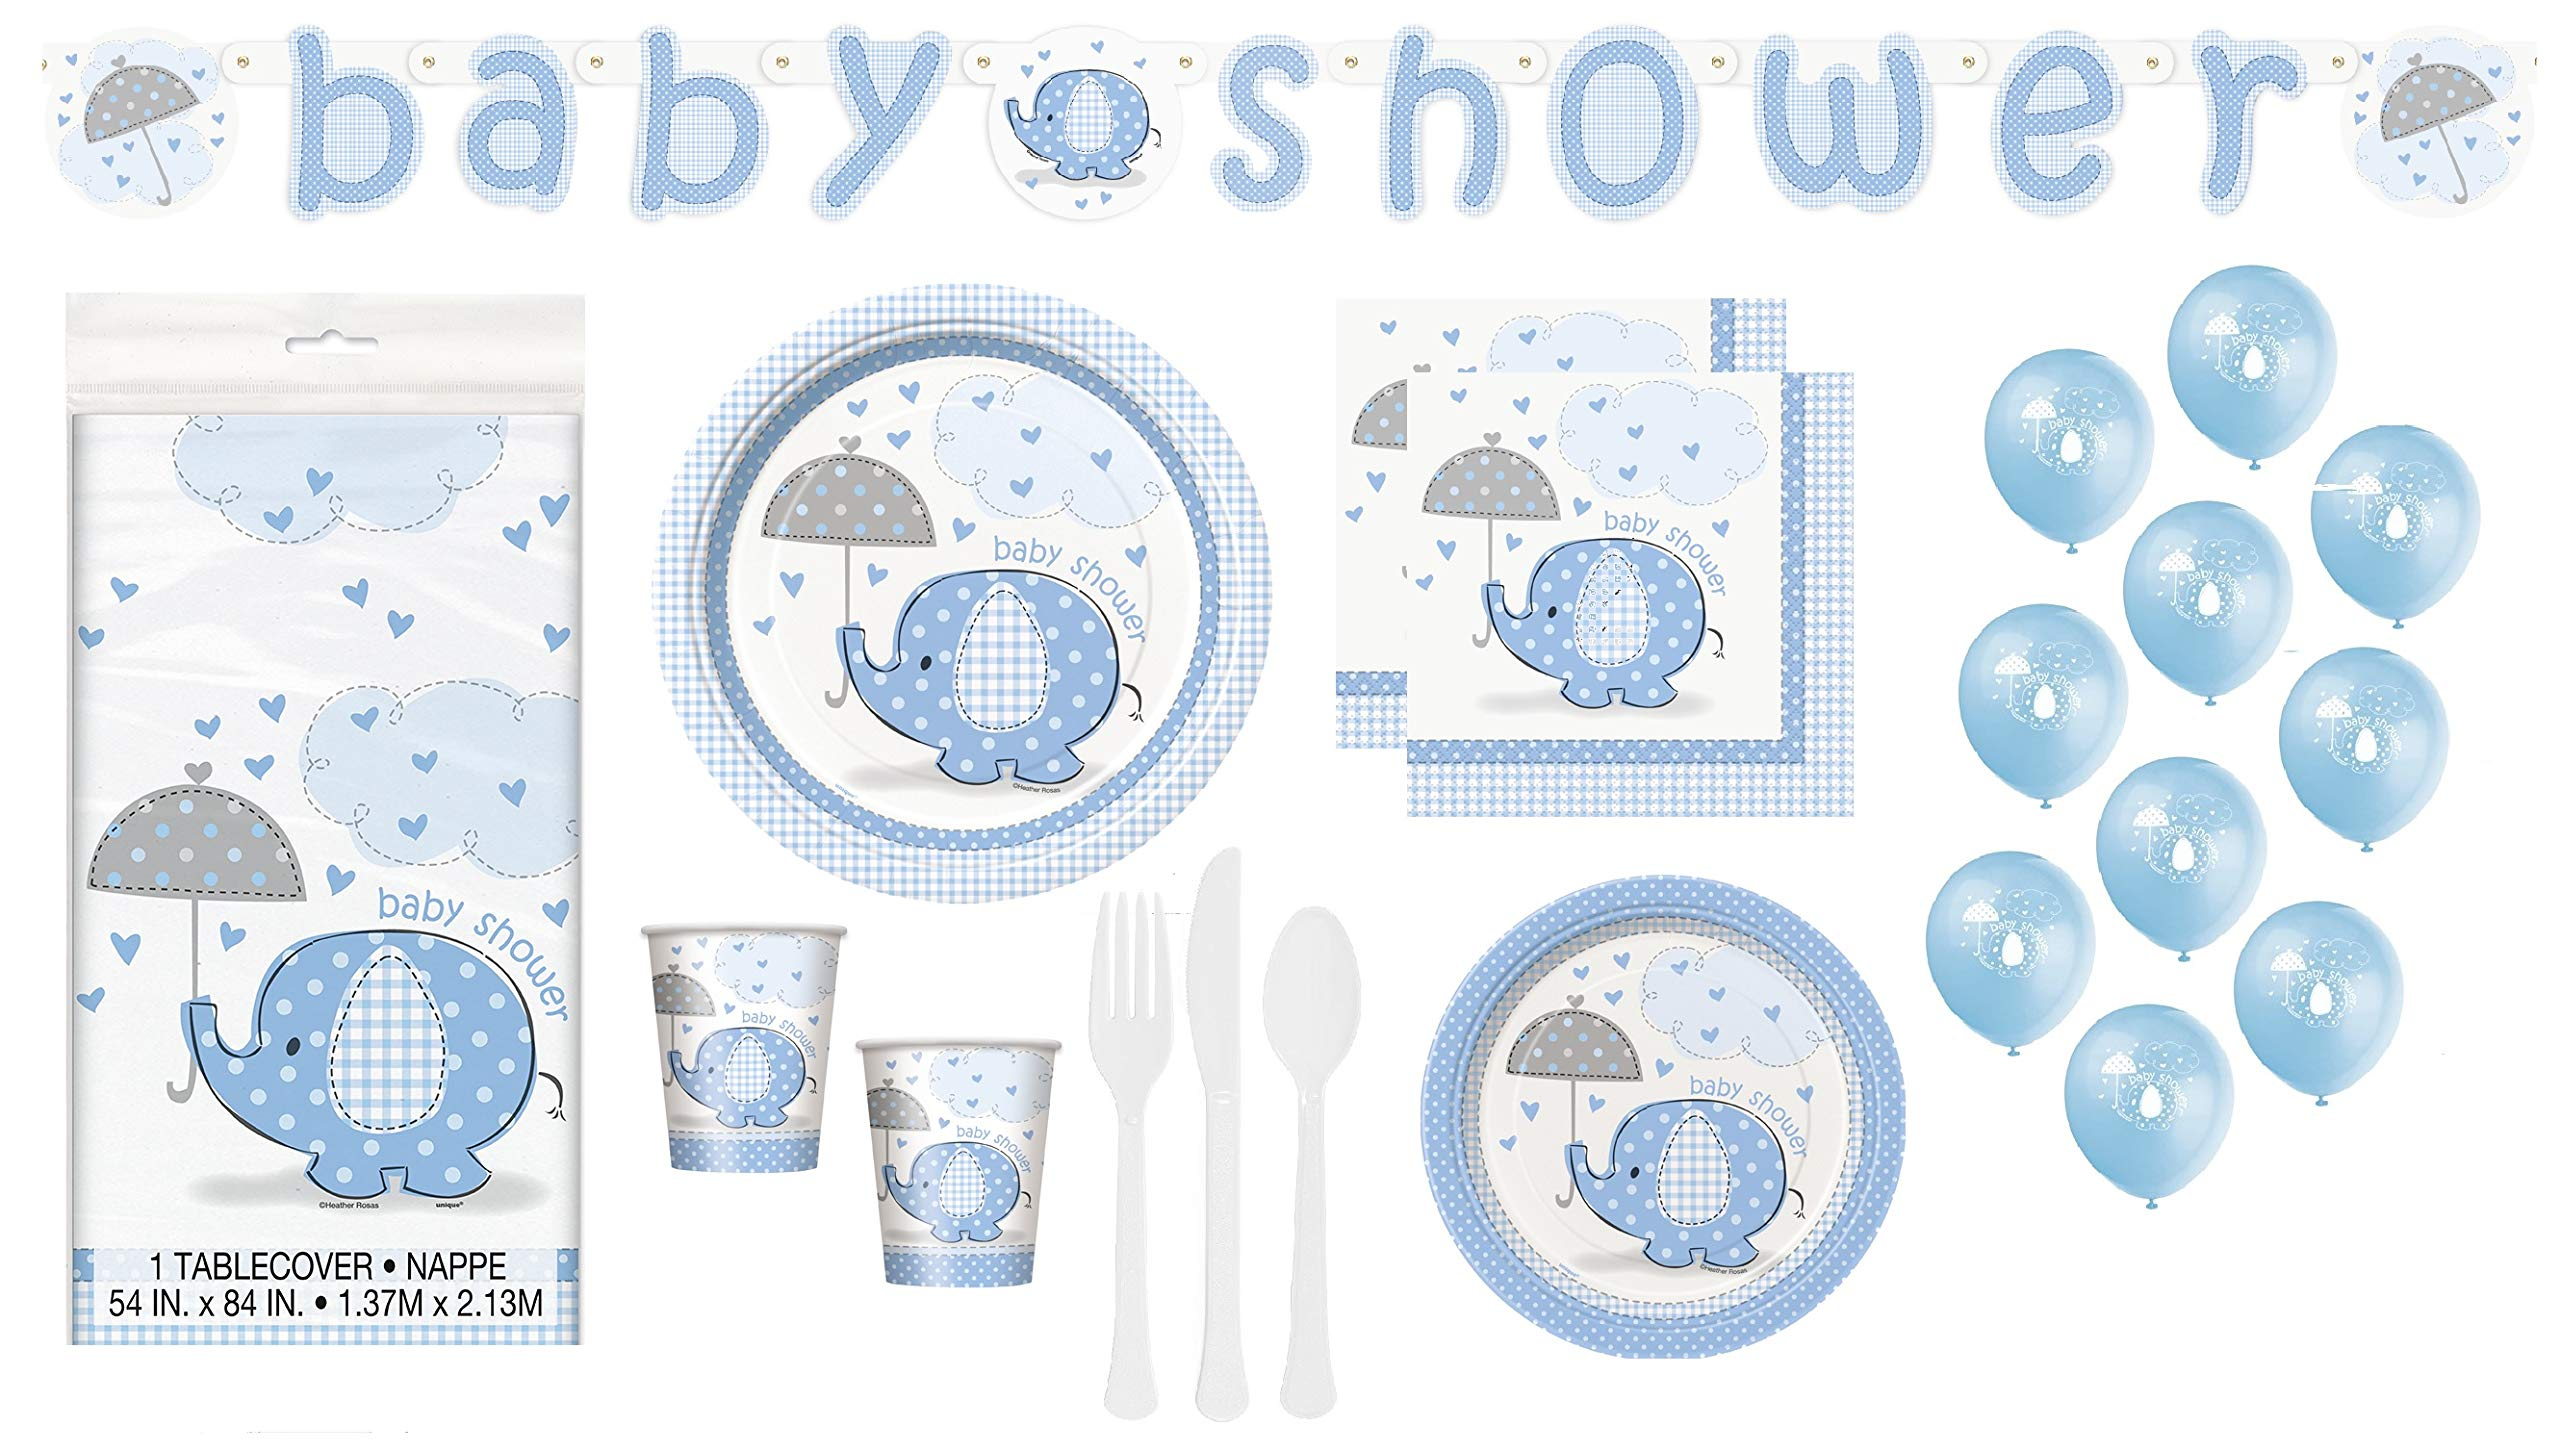 Baby Boy Shower Blue Elephant Theme Party Supplies Decorations Tableware Plates Napkins Cups Cutlery Table Cover Banner Balloons Serves 24 Guests